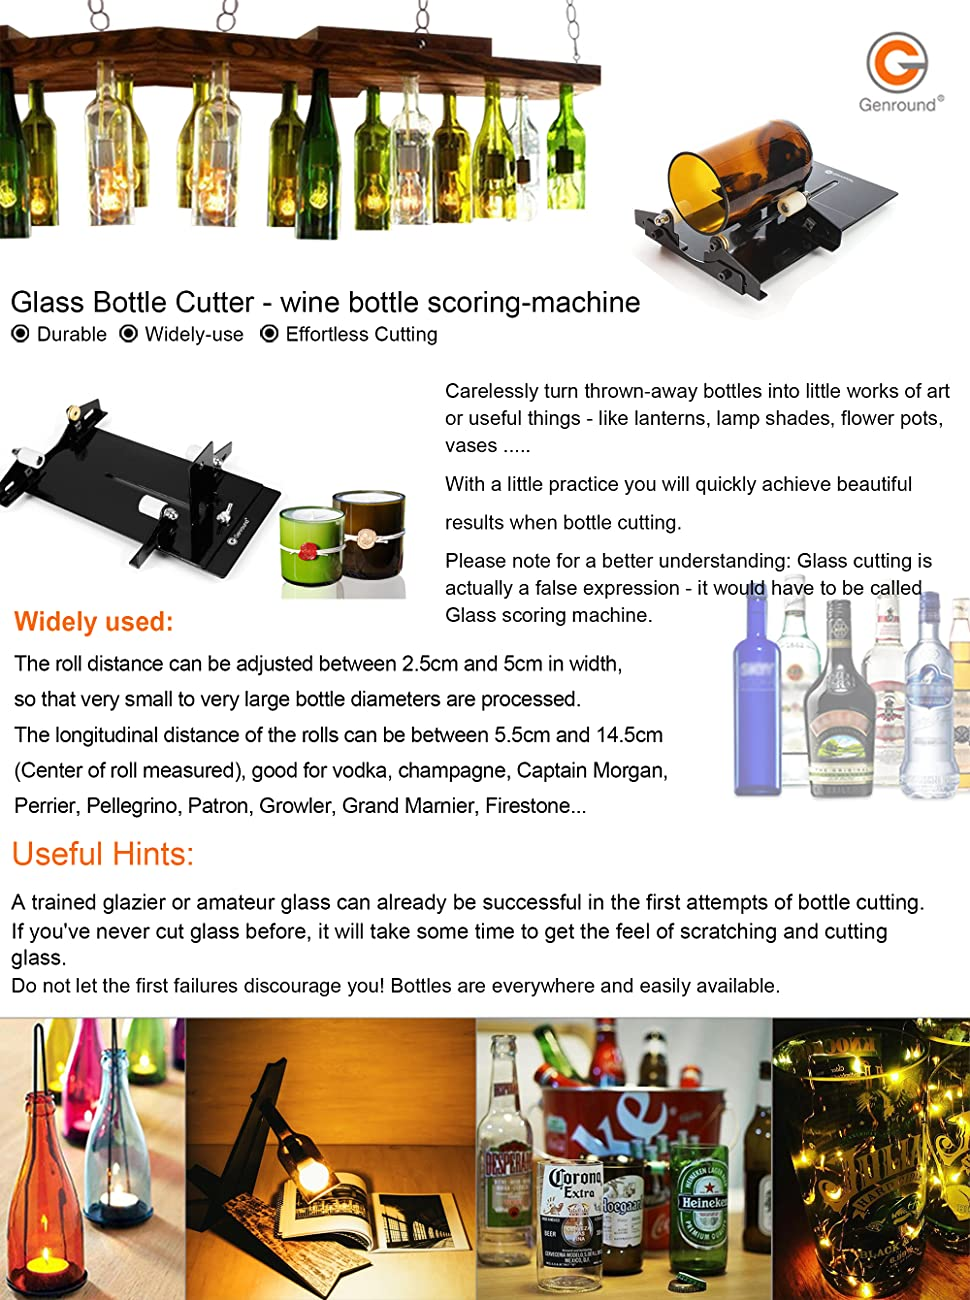 Beer Gloves Bottle Cutting Machine Kit Accessories Tool Kit Whiskey Liquor Alcohol Kalolary Glass Bottle Cutter Cutting Tool for Cutting Wine Champagne Water or Soda Round Bottles